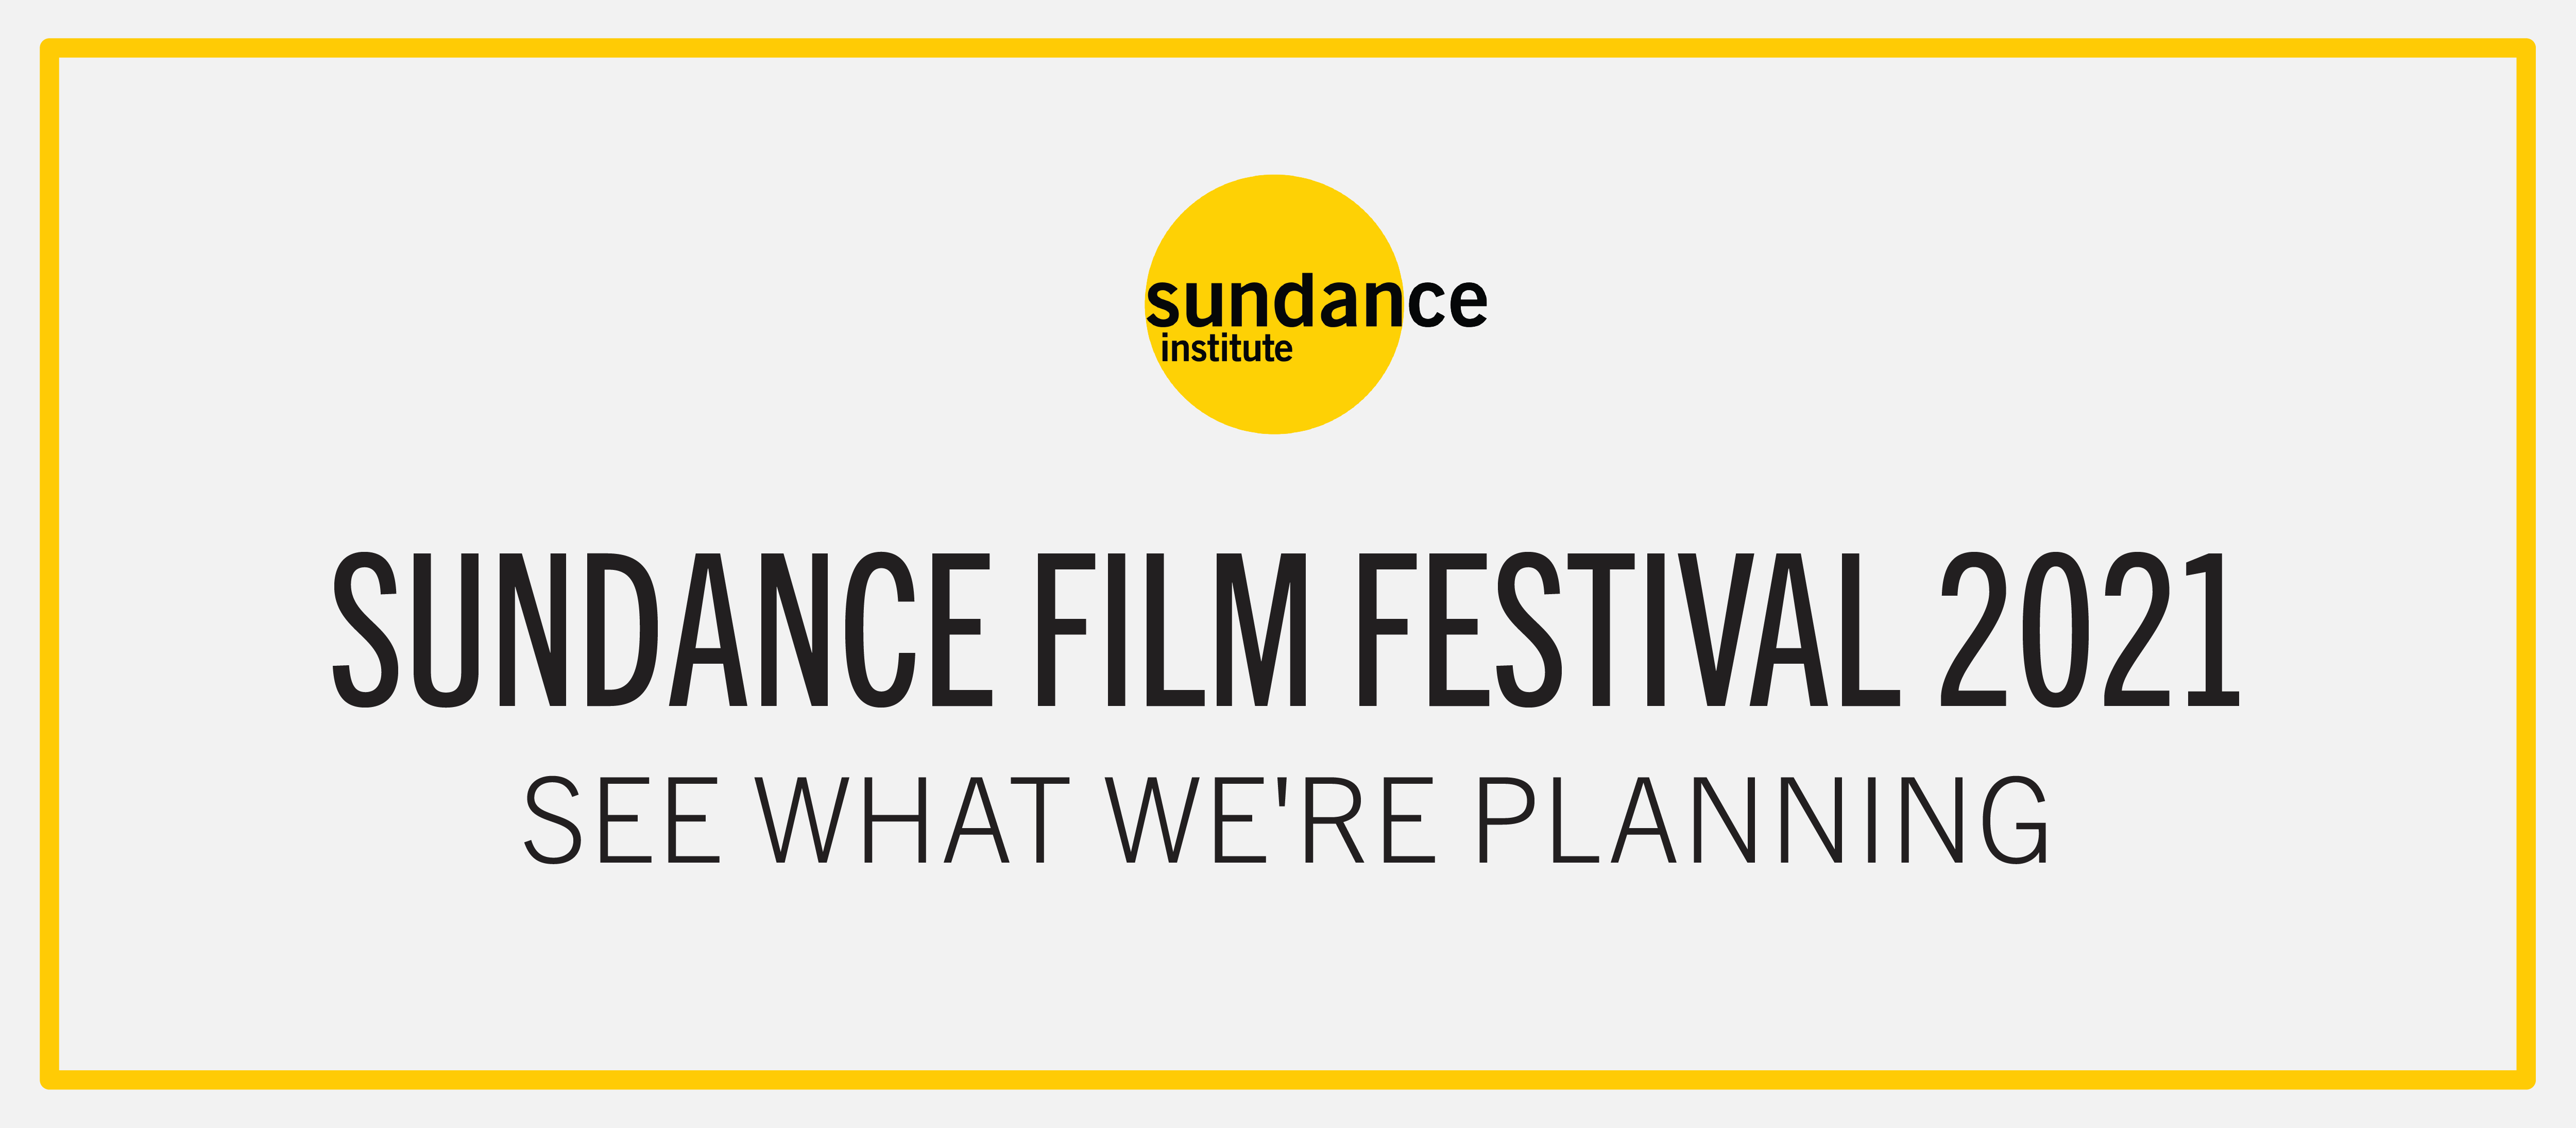 Sundance Film Festival 2021: See what we're planning